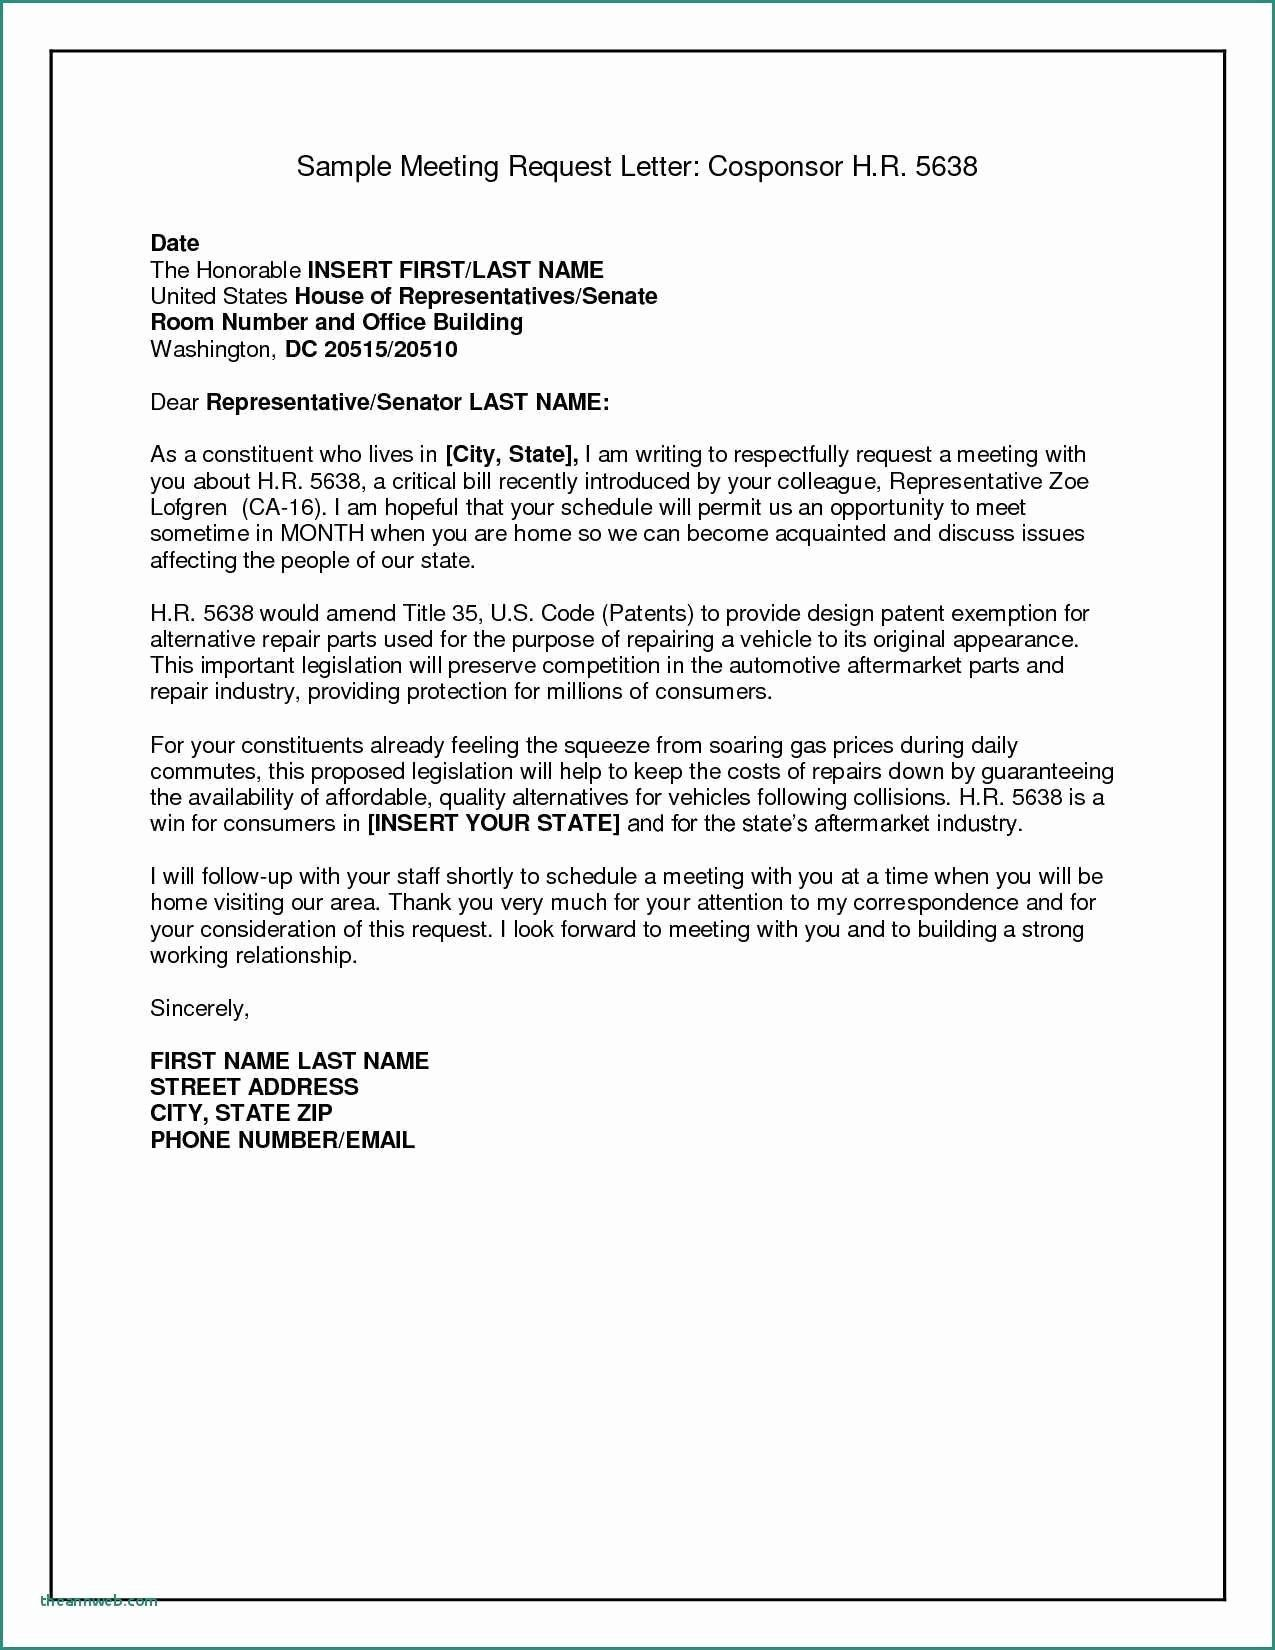 Office Open House Invitation Wording New Letter Format For Meeting Invitation C Business Proposal Letter Writing A Business Proposal Business Proposal Template